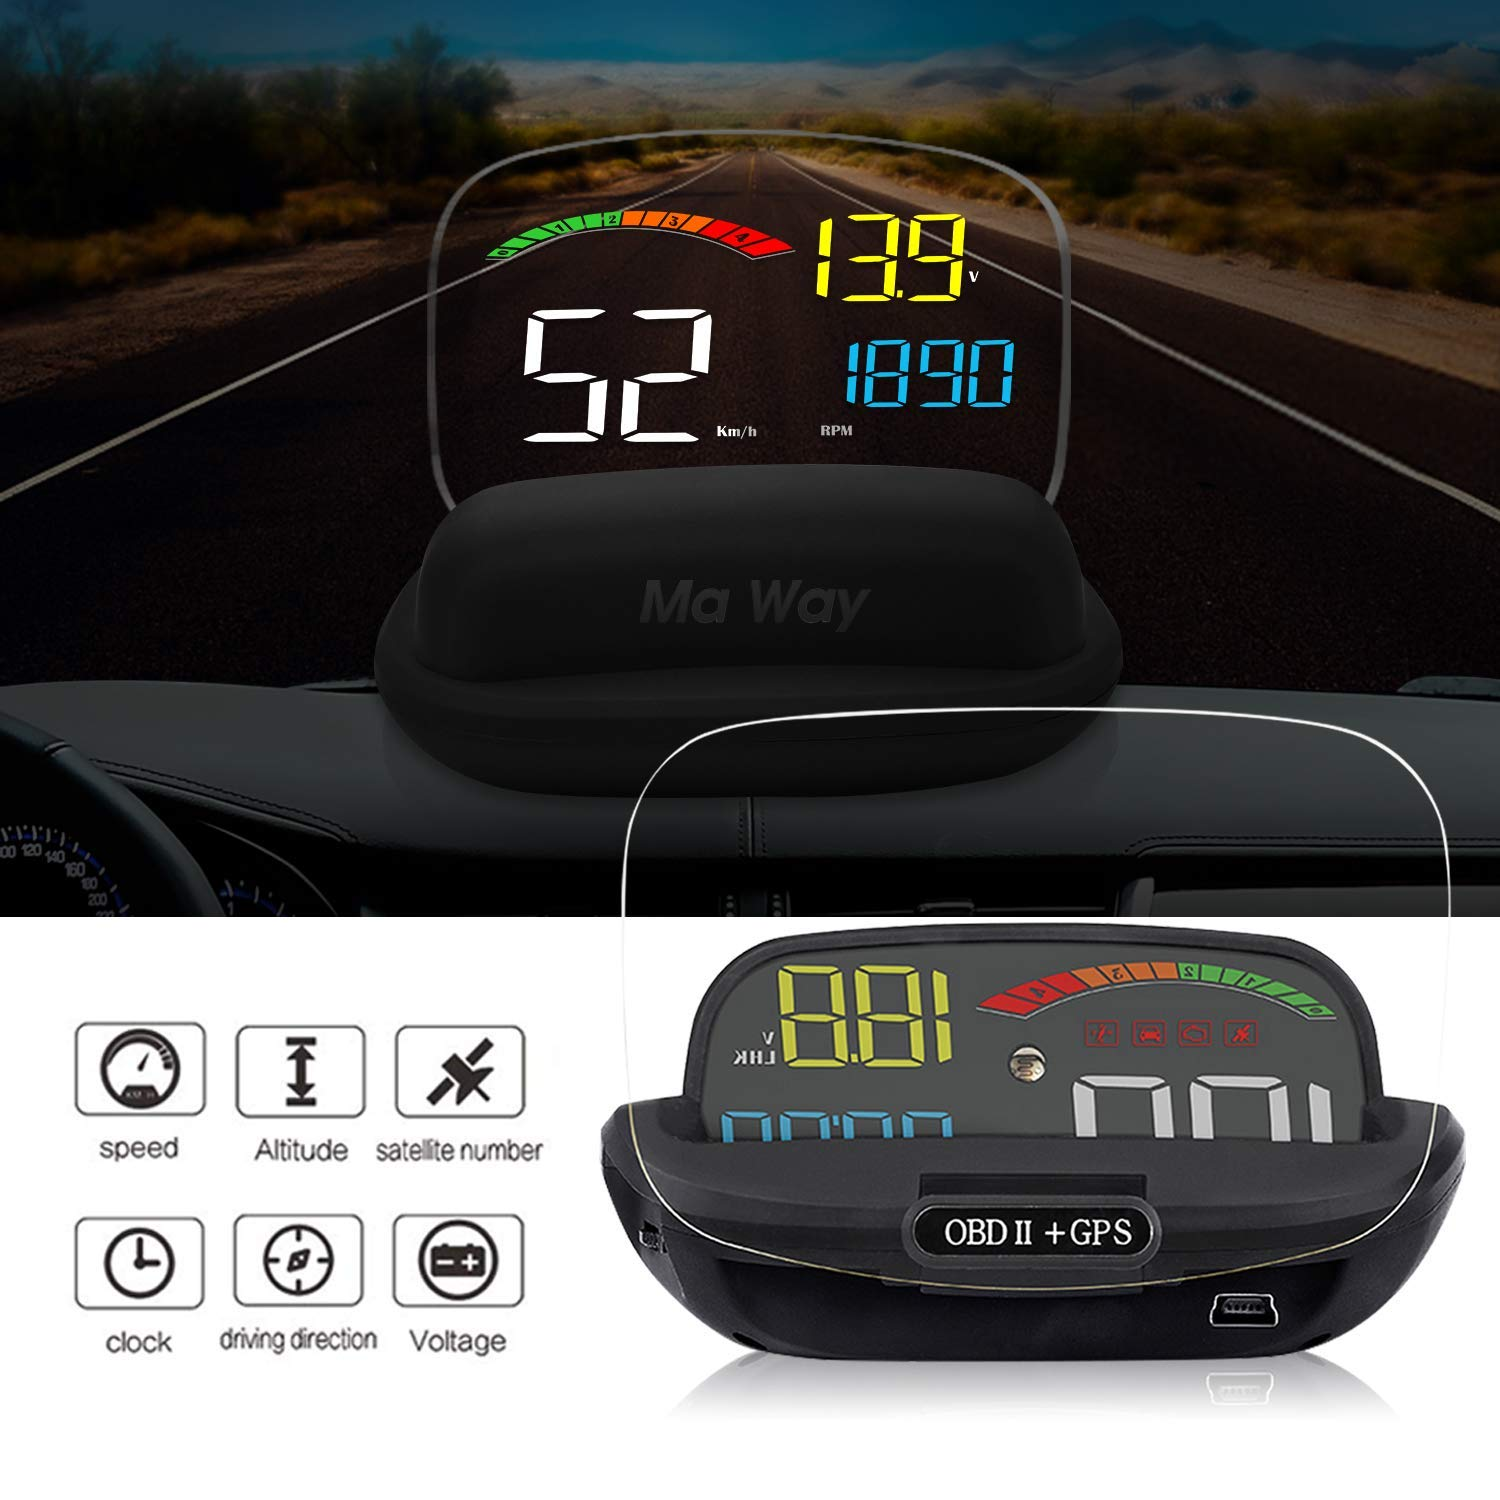 VGEBY Multi-function Car 5.5 HUD Head Up Display Speeding Fuel Warning Windshield Projector System with OBD2 EUOBD Interface